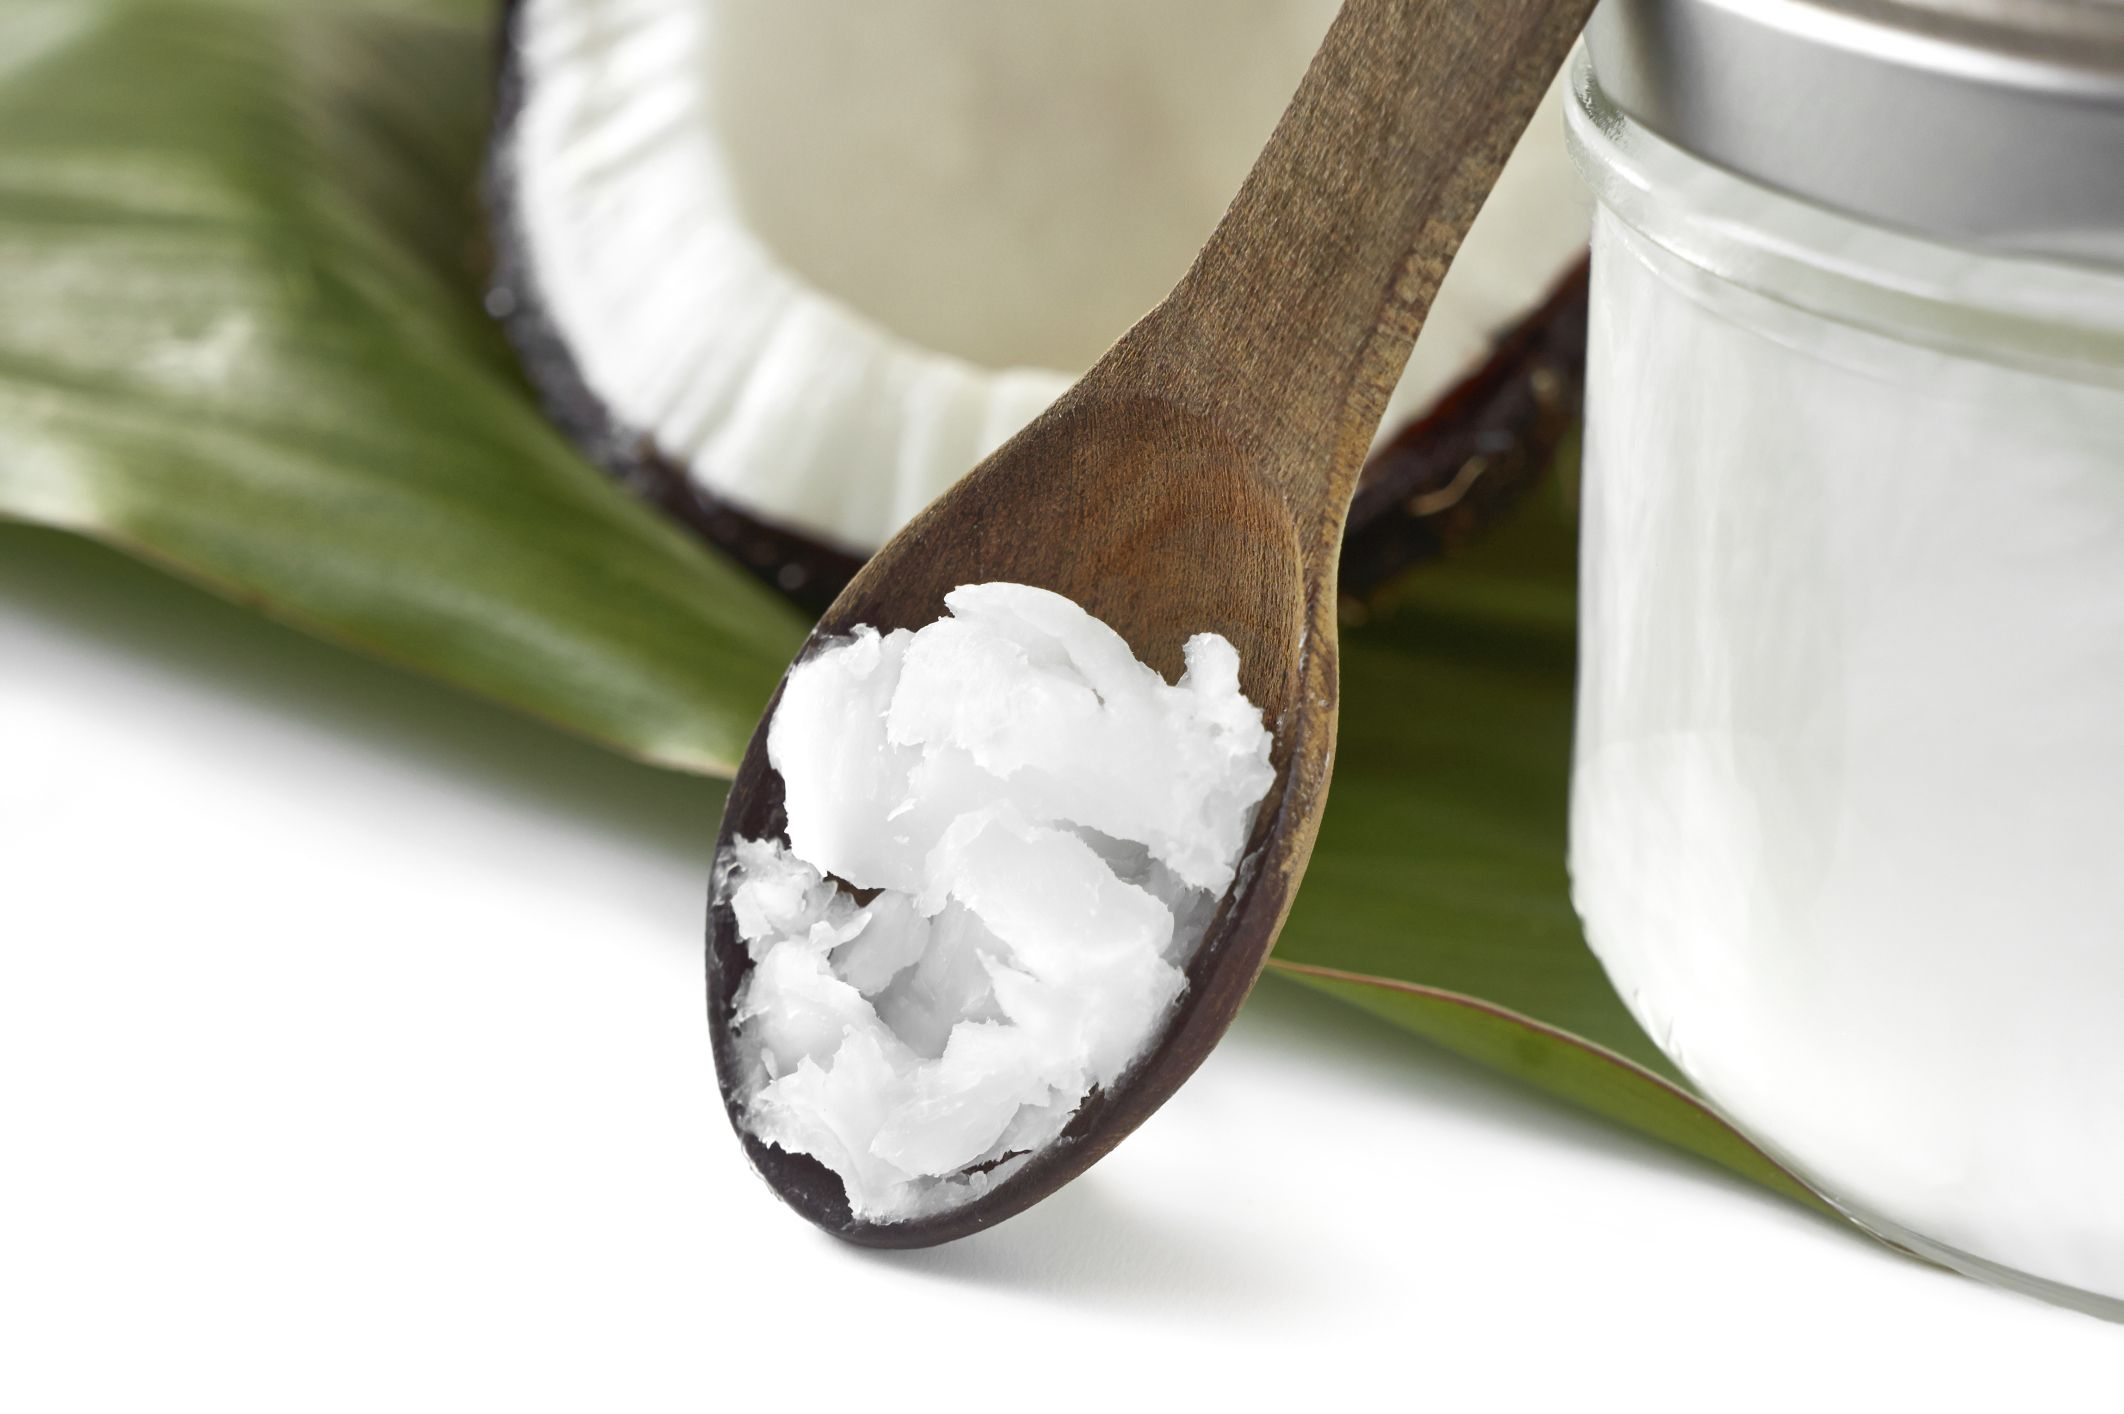 Coconut oil used as lube